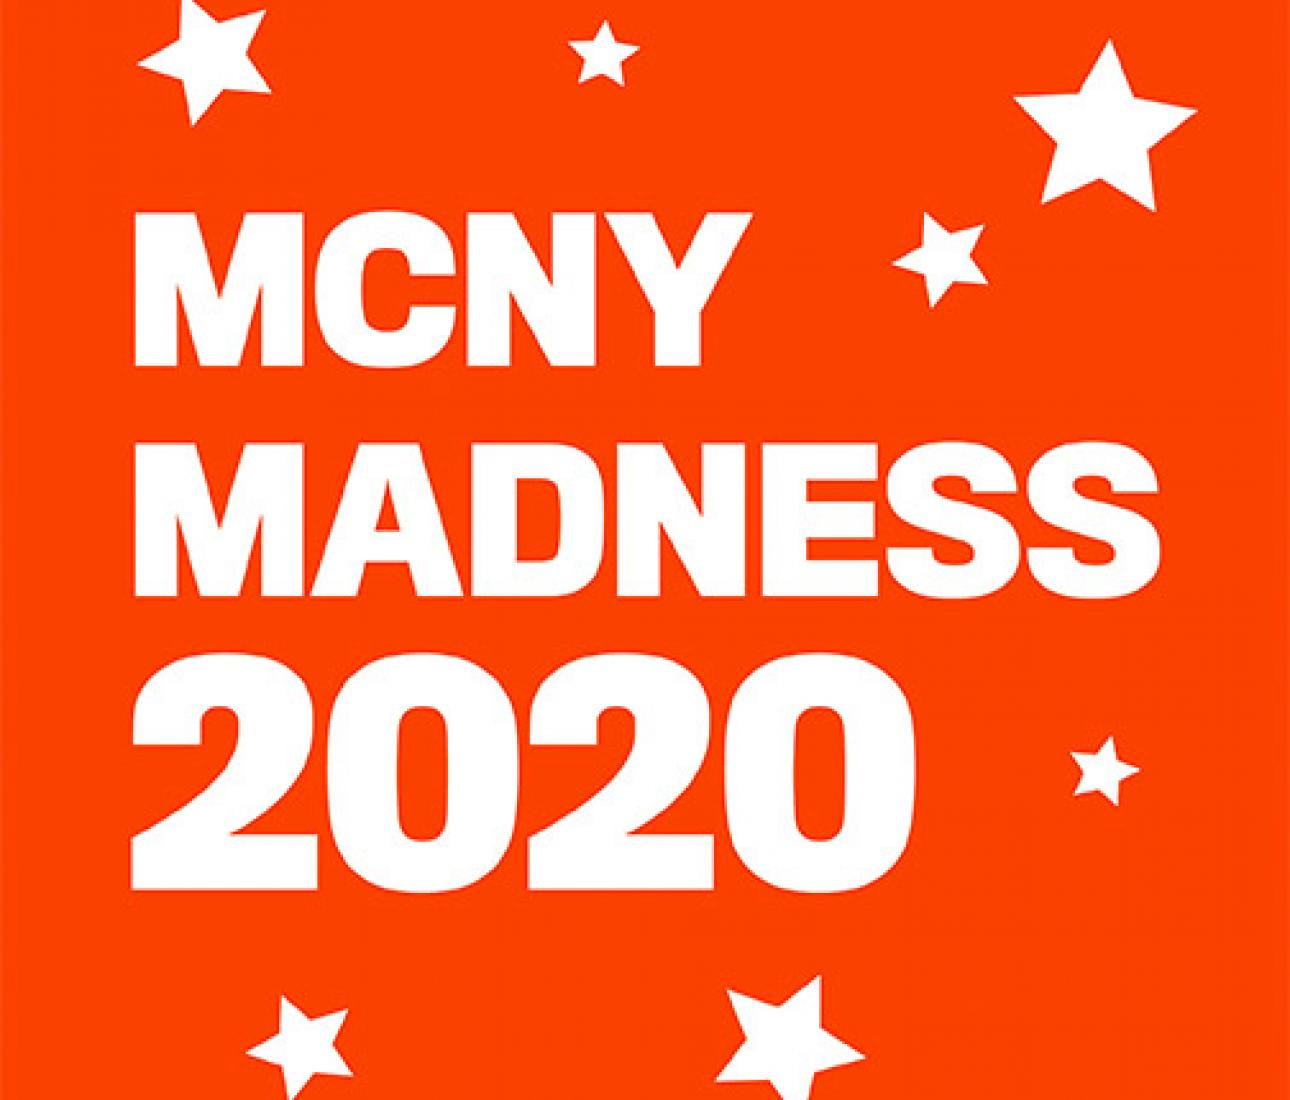 MCNY Madness Challenge 2020